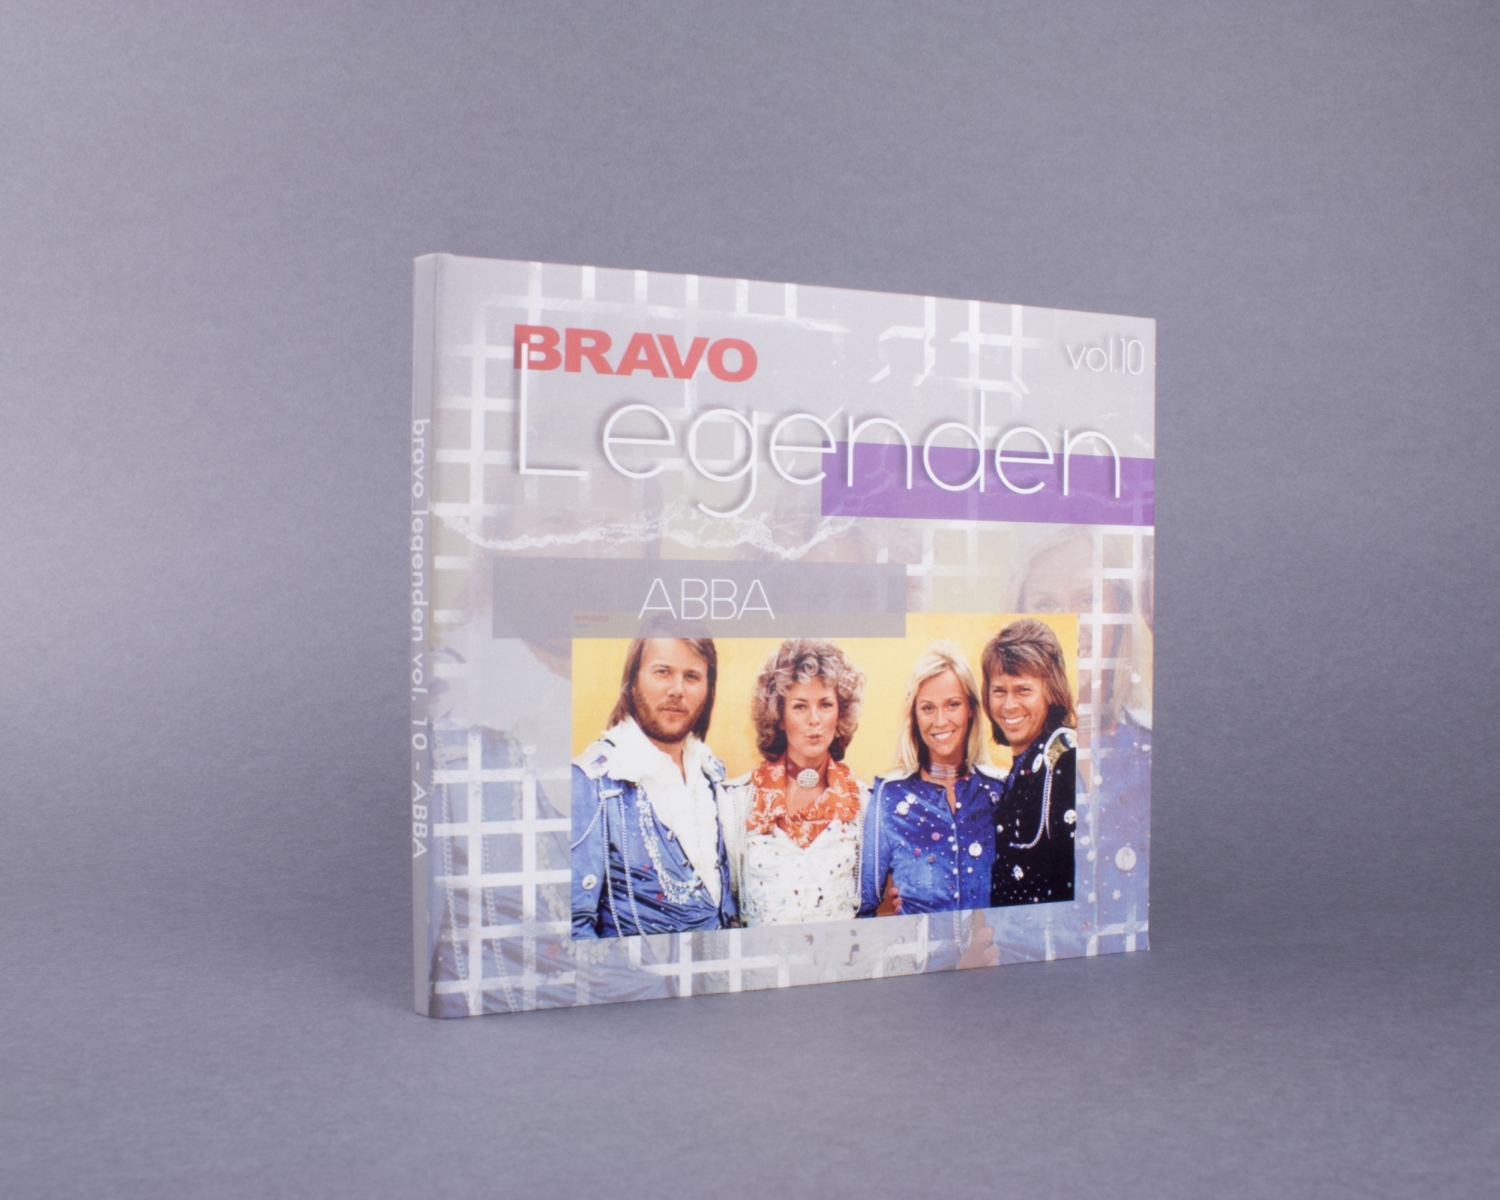 BRAVO Legenden Vol. 10 – ABBA